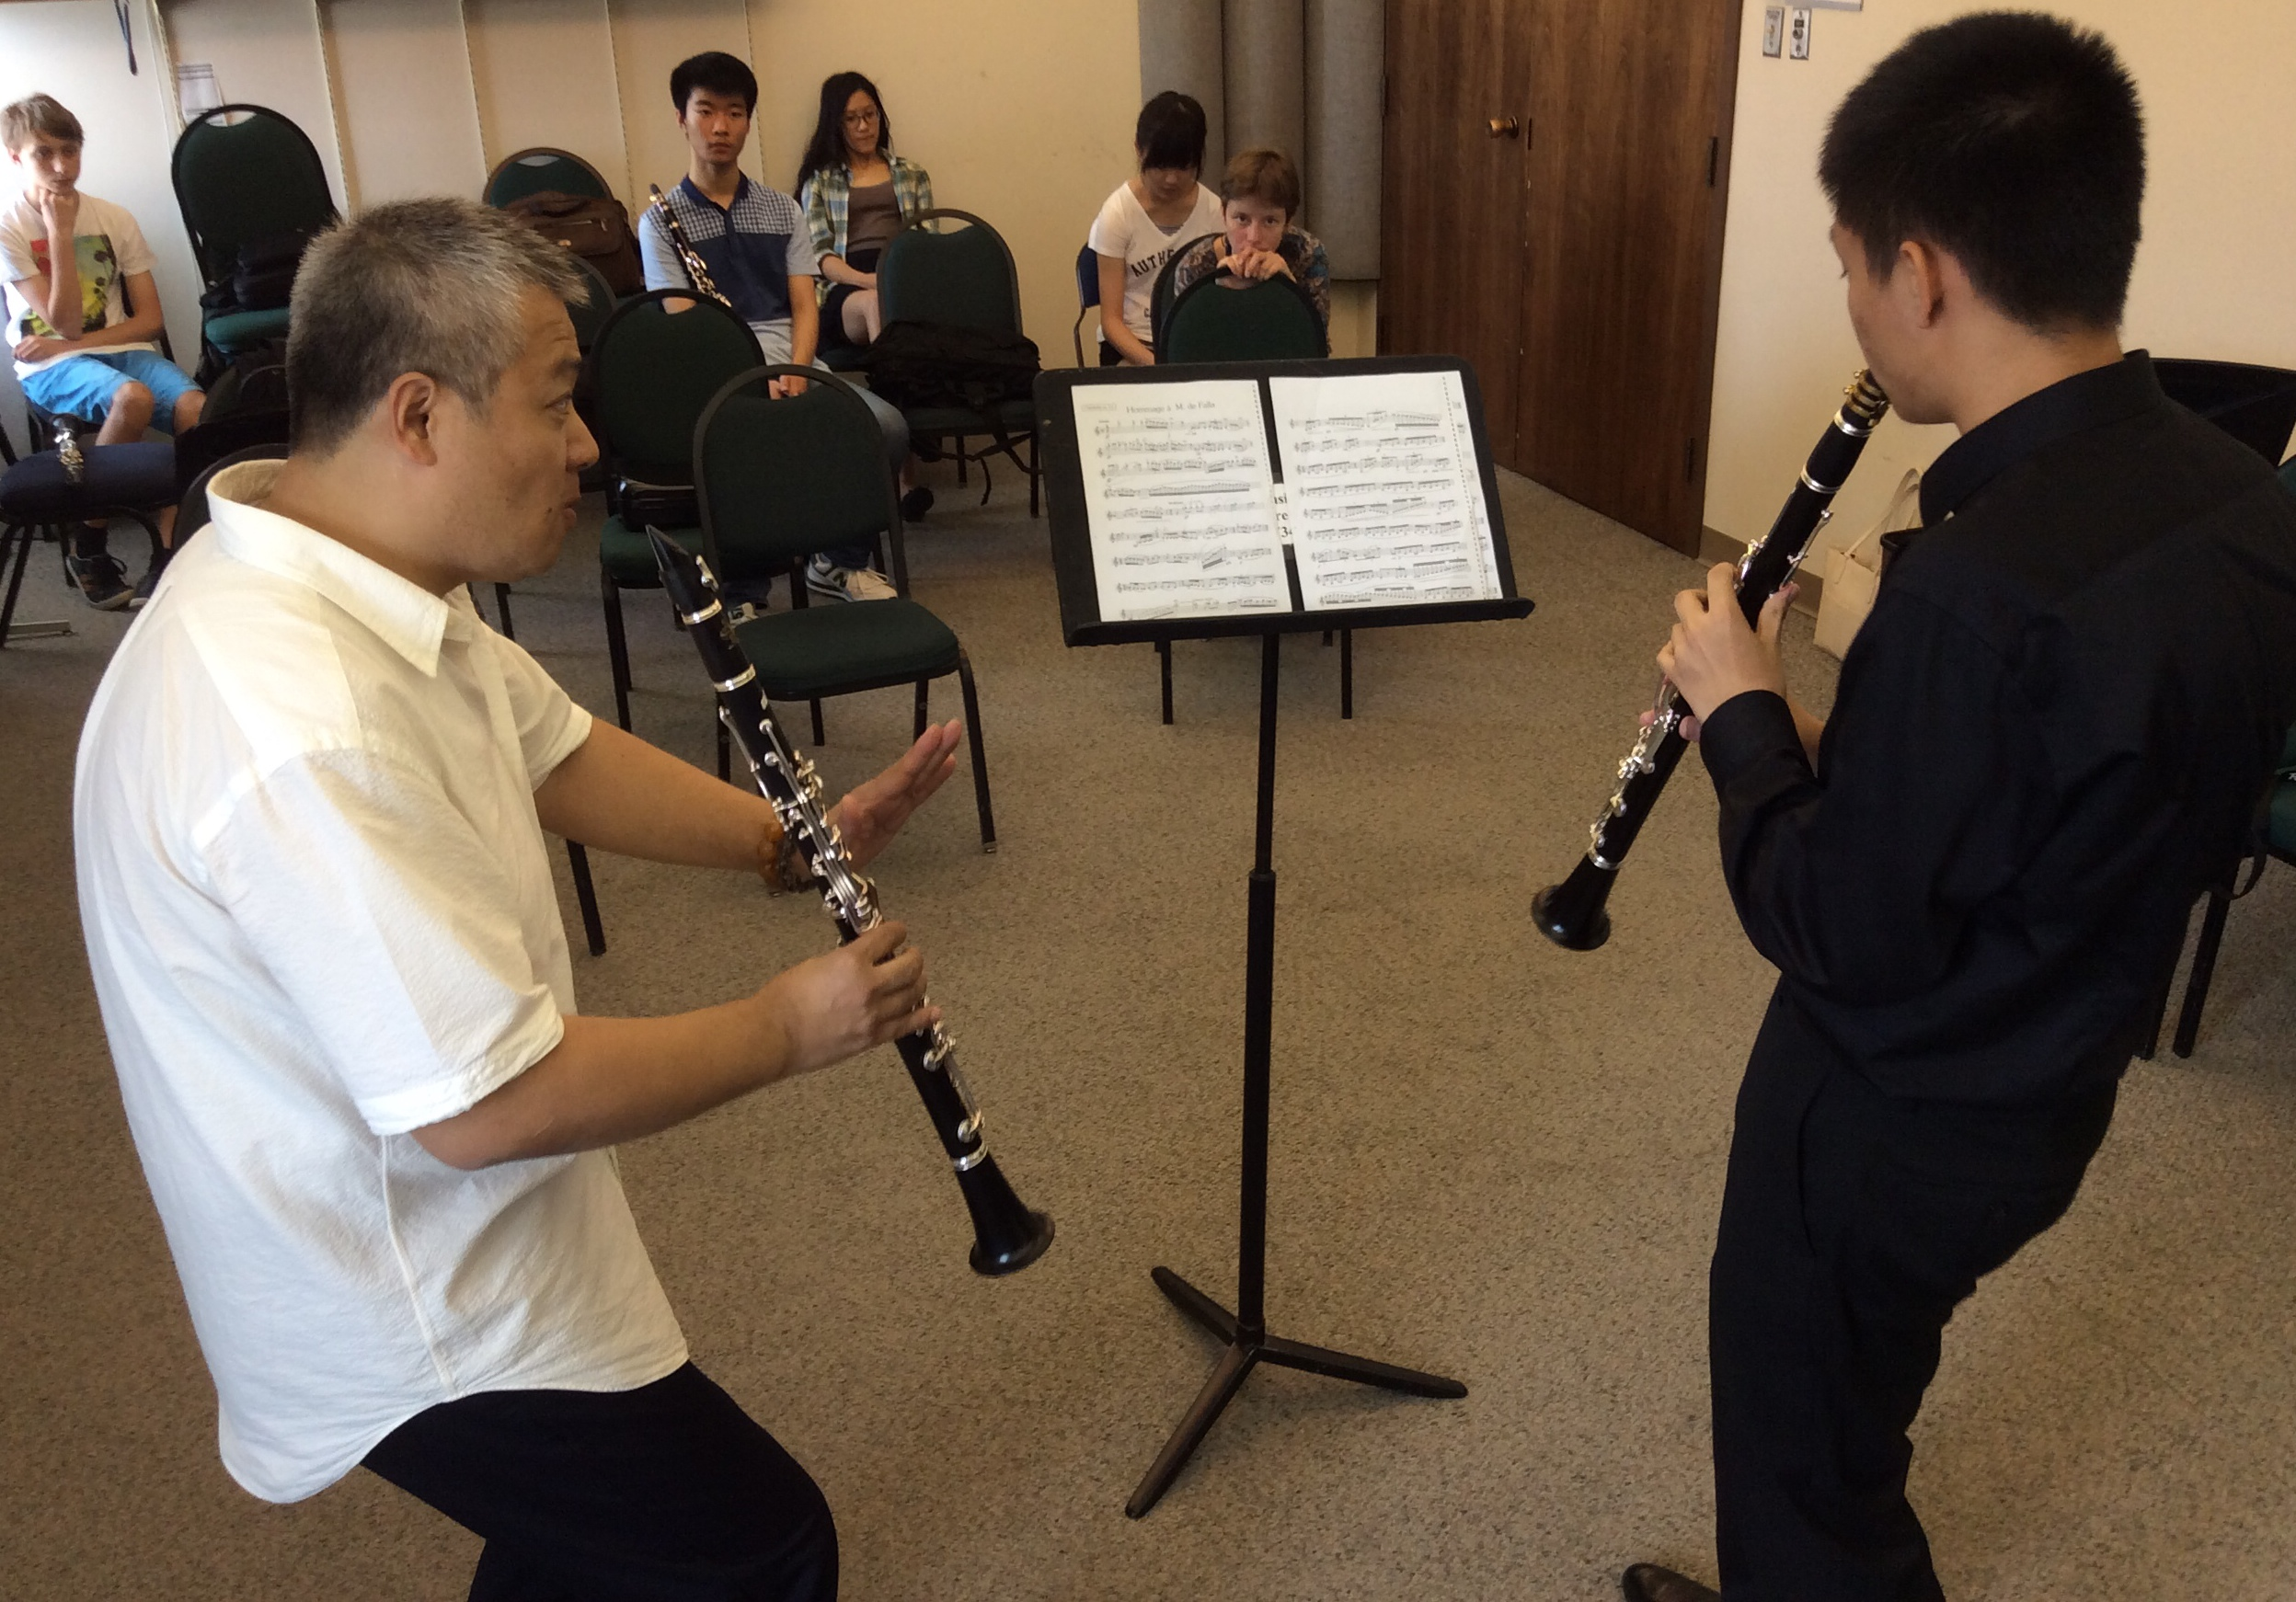 Clarinetist Fan Lei teaches a master class at Morningside Music Bridge